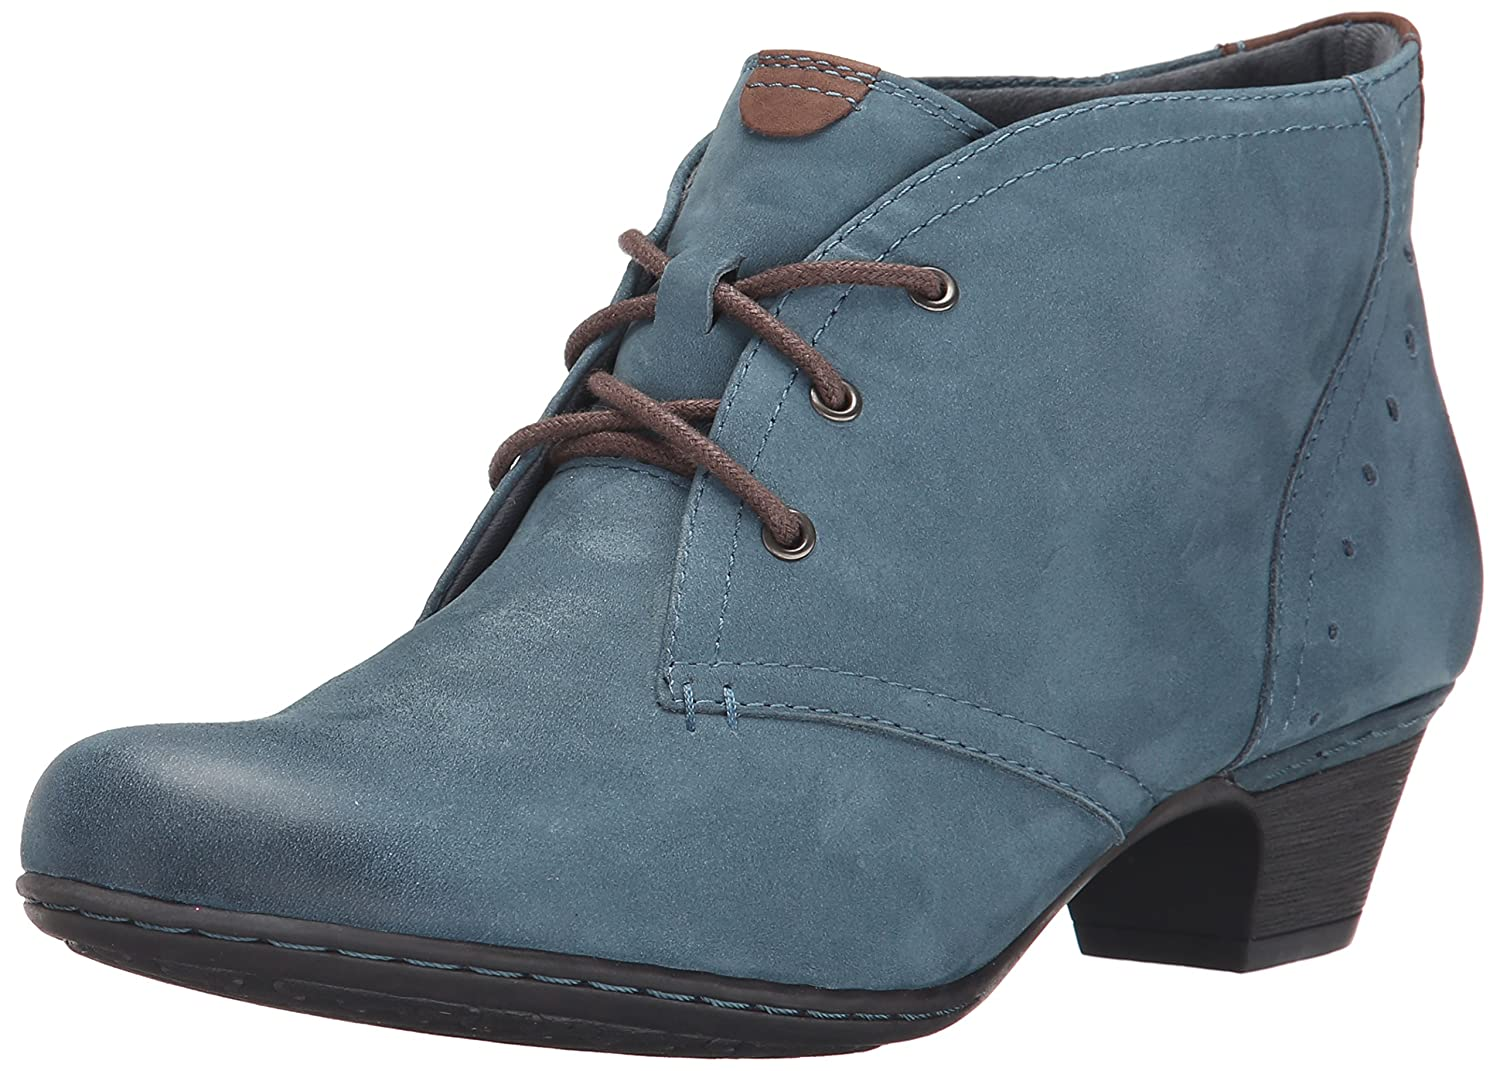 Cobb Hill Rockport Women's Aria-Ch Boot B00SJW5M9A 10 B(M) US|Blue